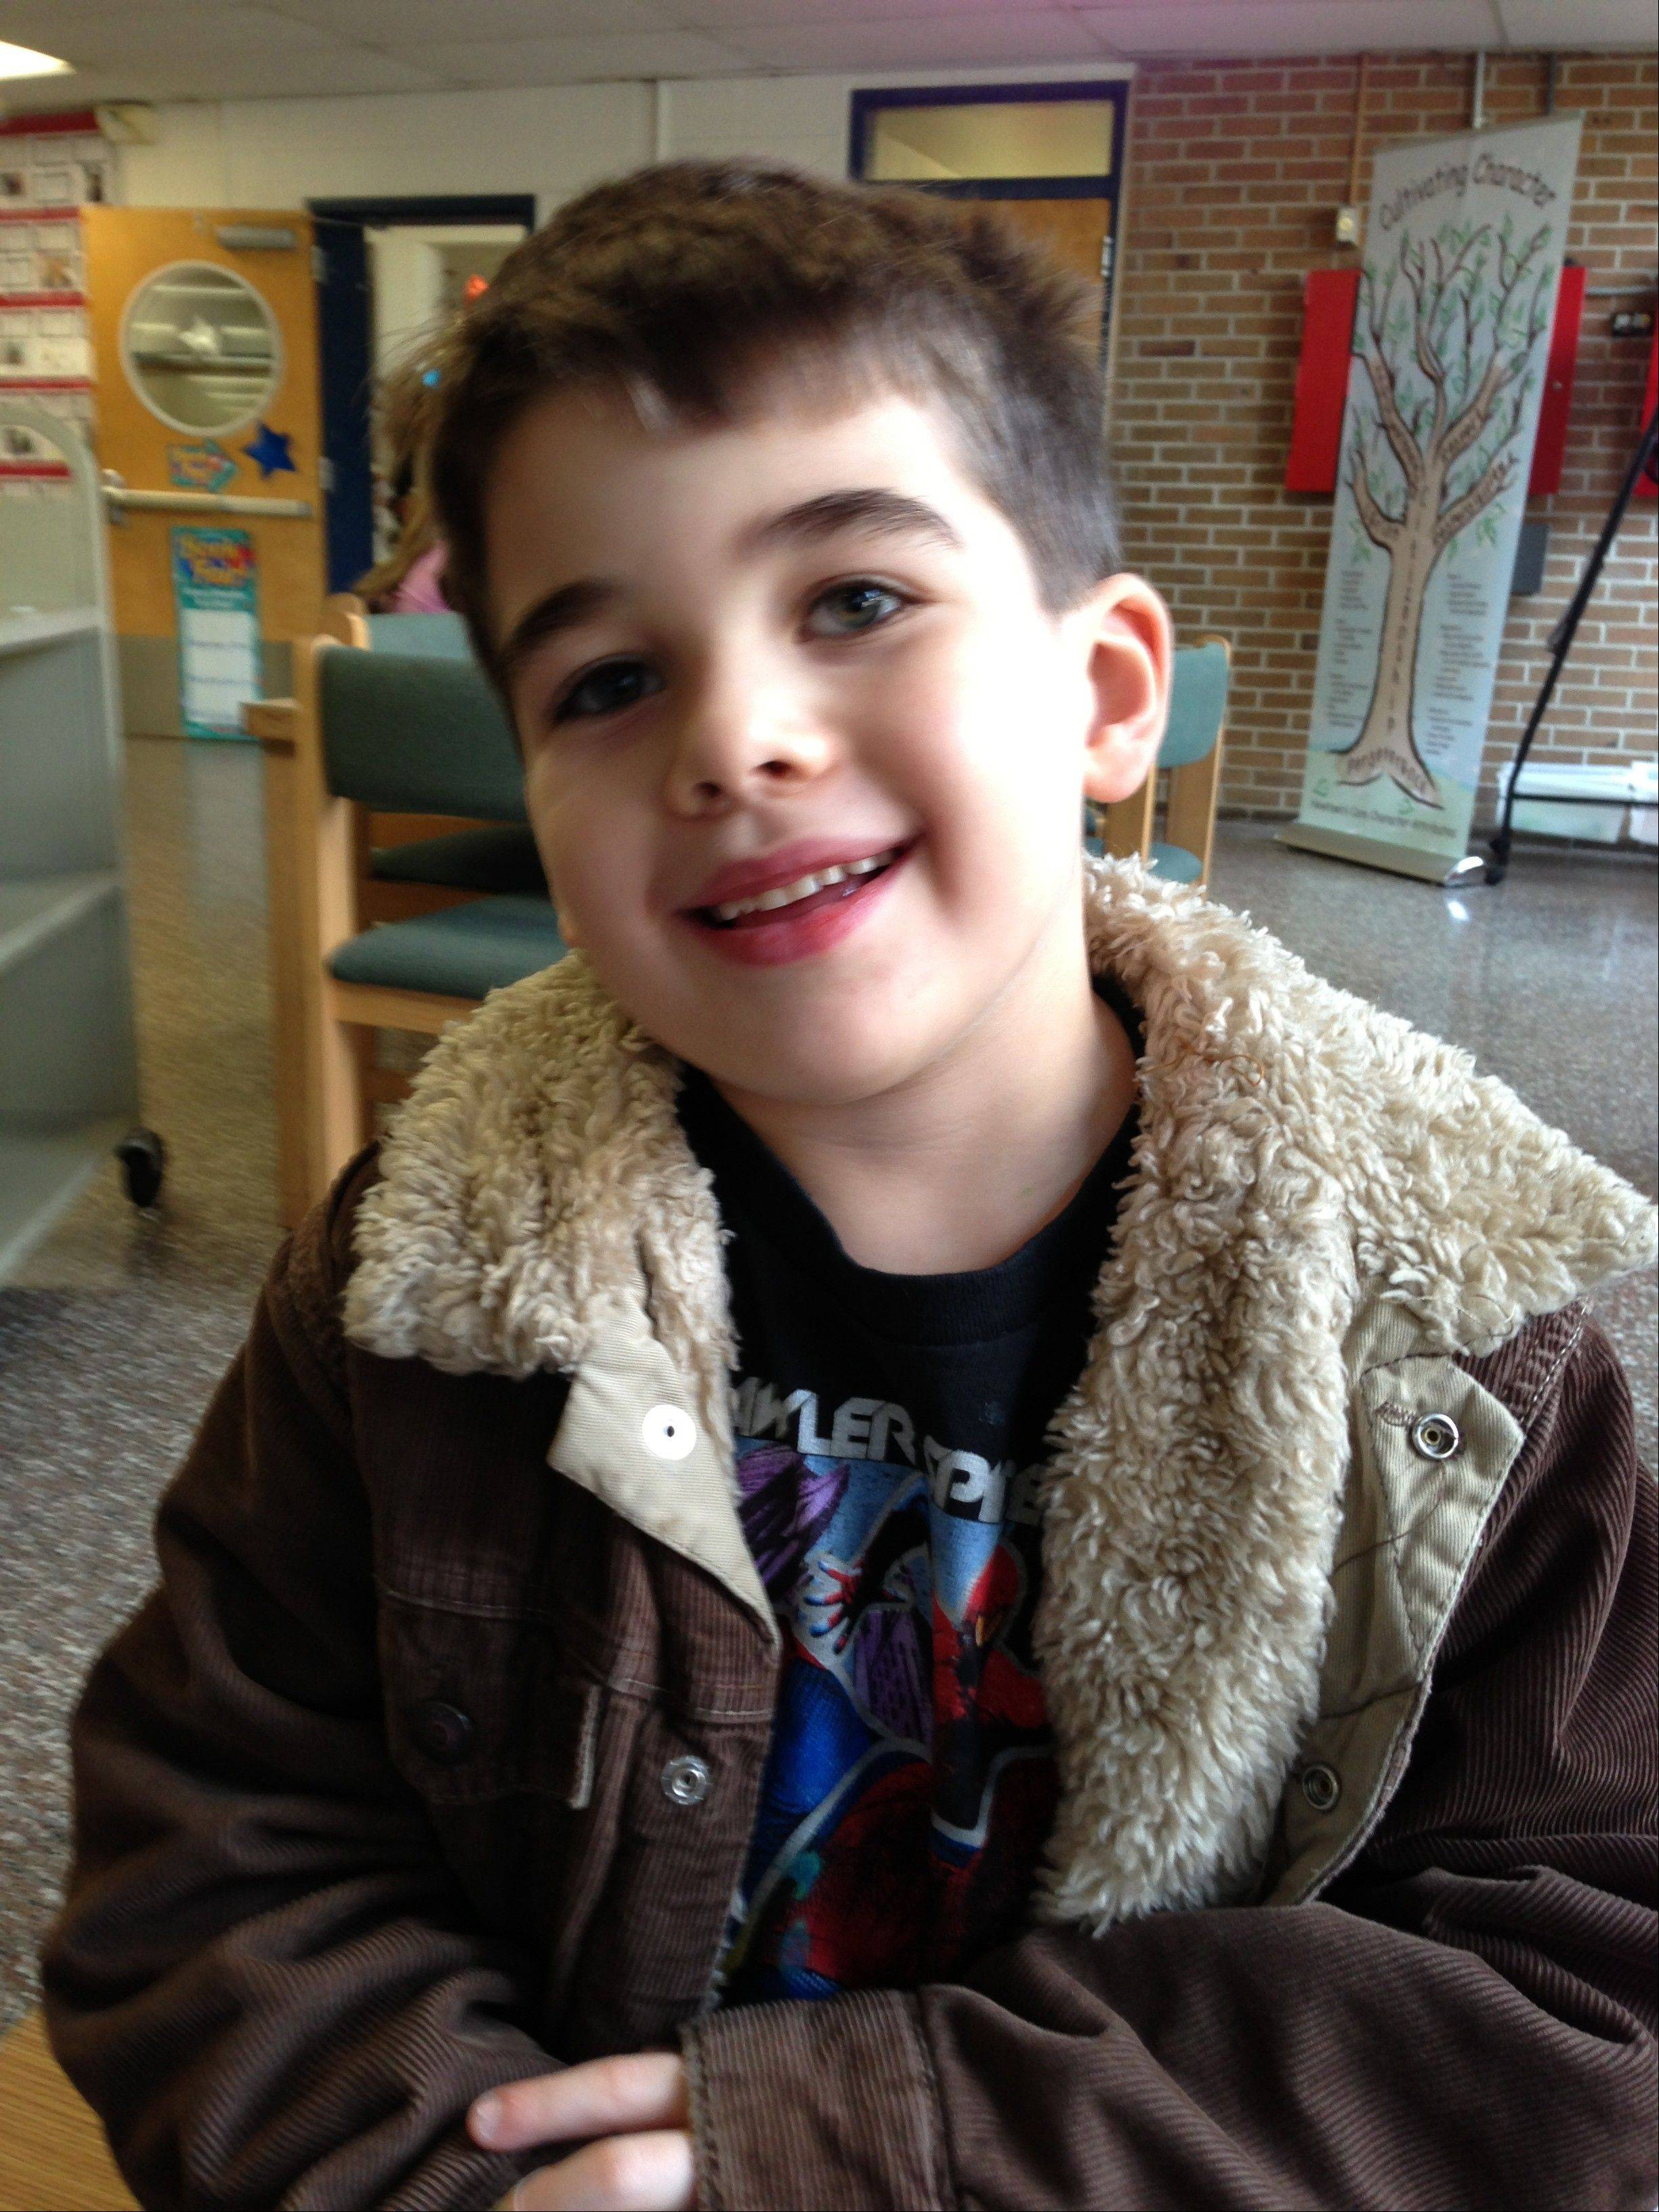 This Nov. 13, 2012 photo provided by the family via The Washington Post shows Noah Pozner. The six-year-old was one of the victims in the Sandy Hook elementary school shooting in Newtown, Conn. on Dec. 14, 2012. Noah will be buried today.